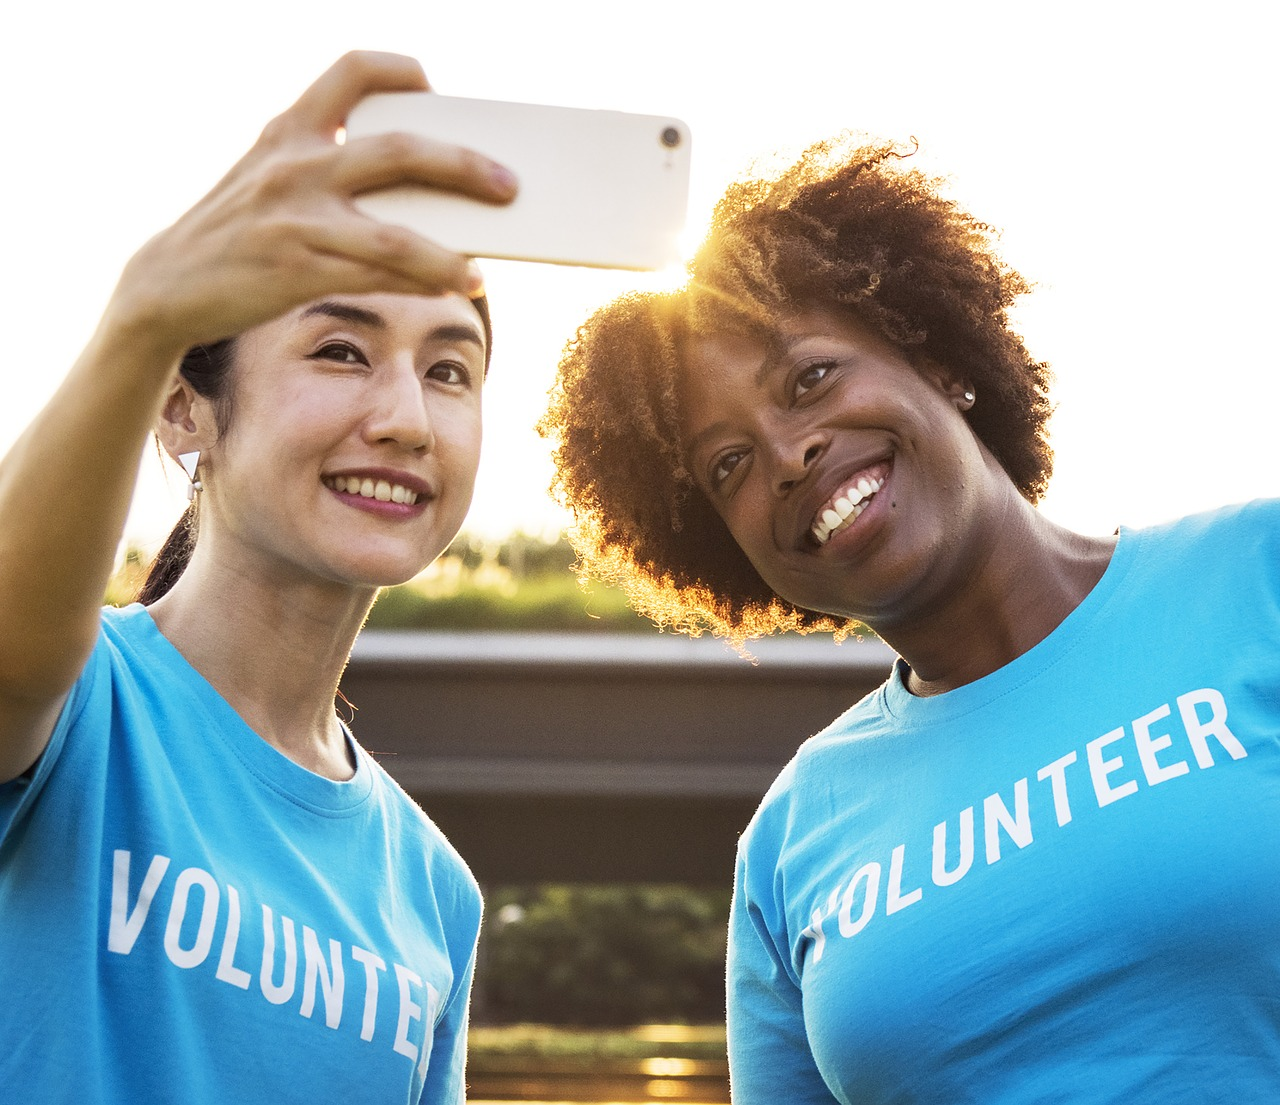 Ways to Volunteer in Your Community